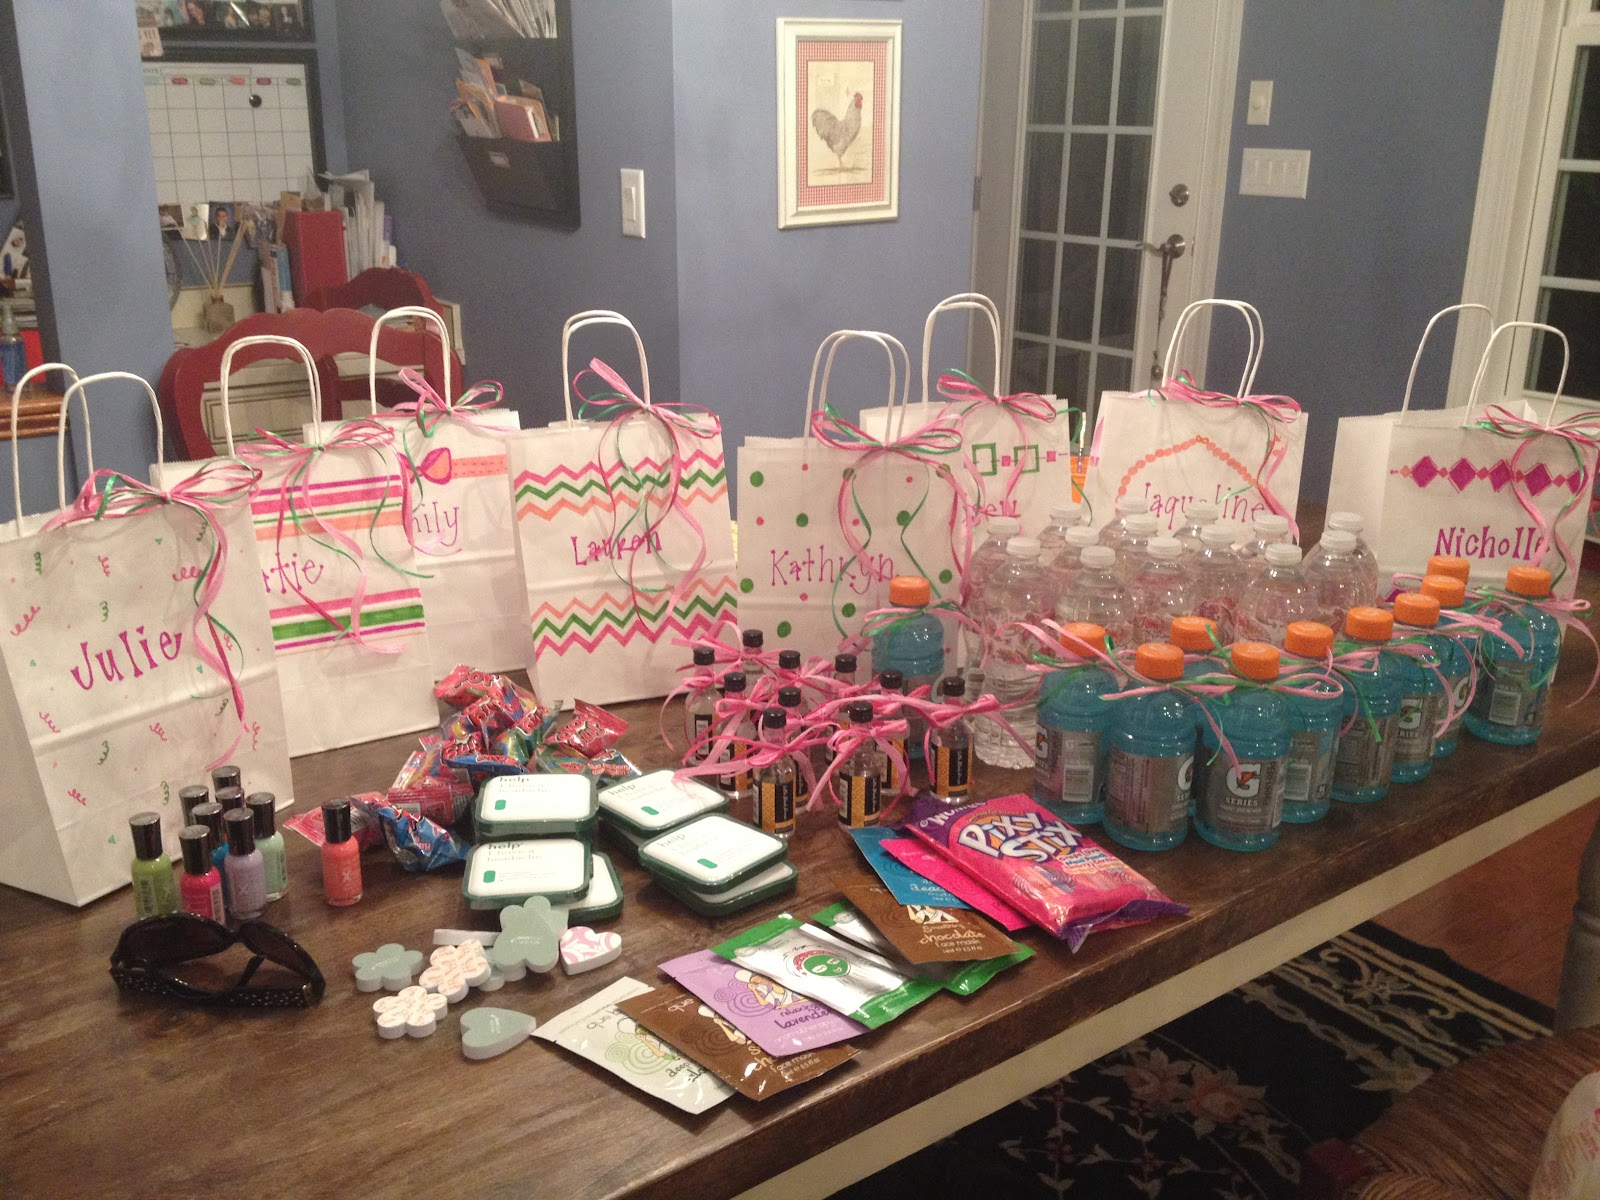 Preppy kates bachelorette party goodie bags for At home bachelorette party ideas